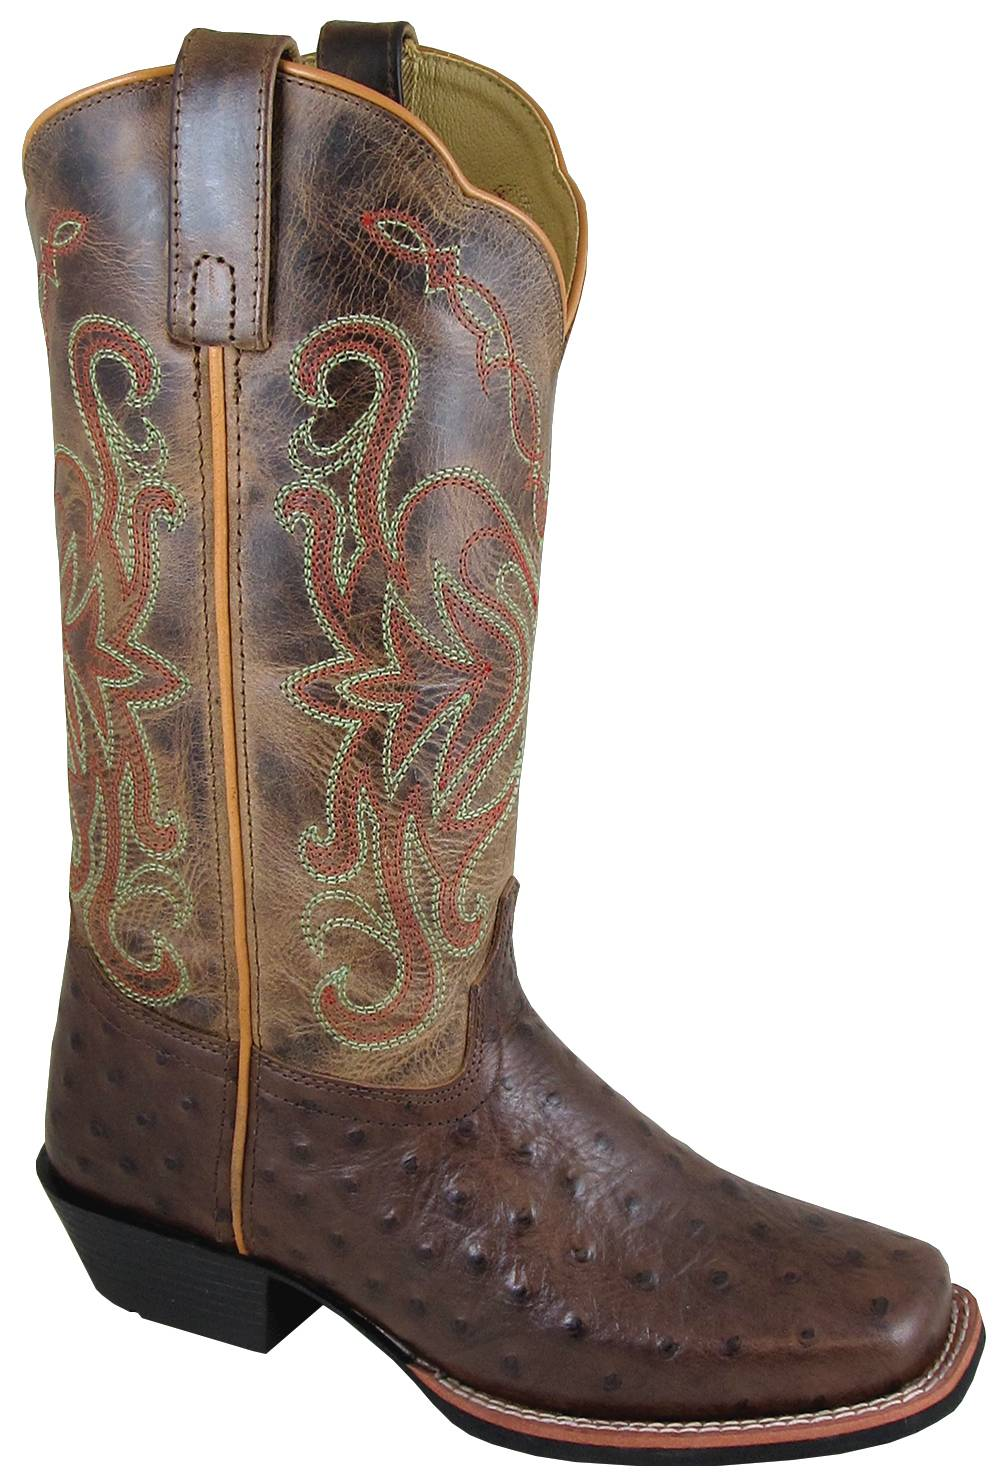 Smoky Mountain Belle Boot - Ladies - Tobacco/Brown Crackle